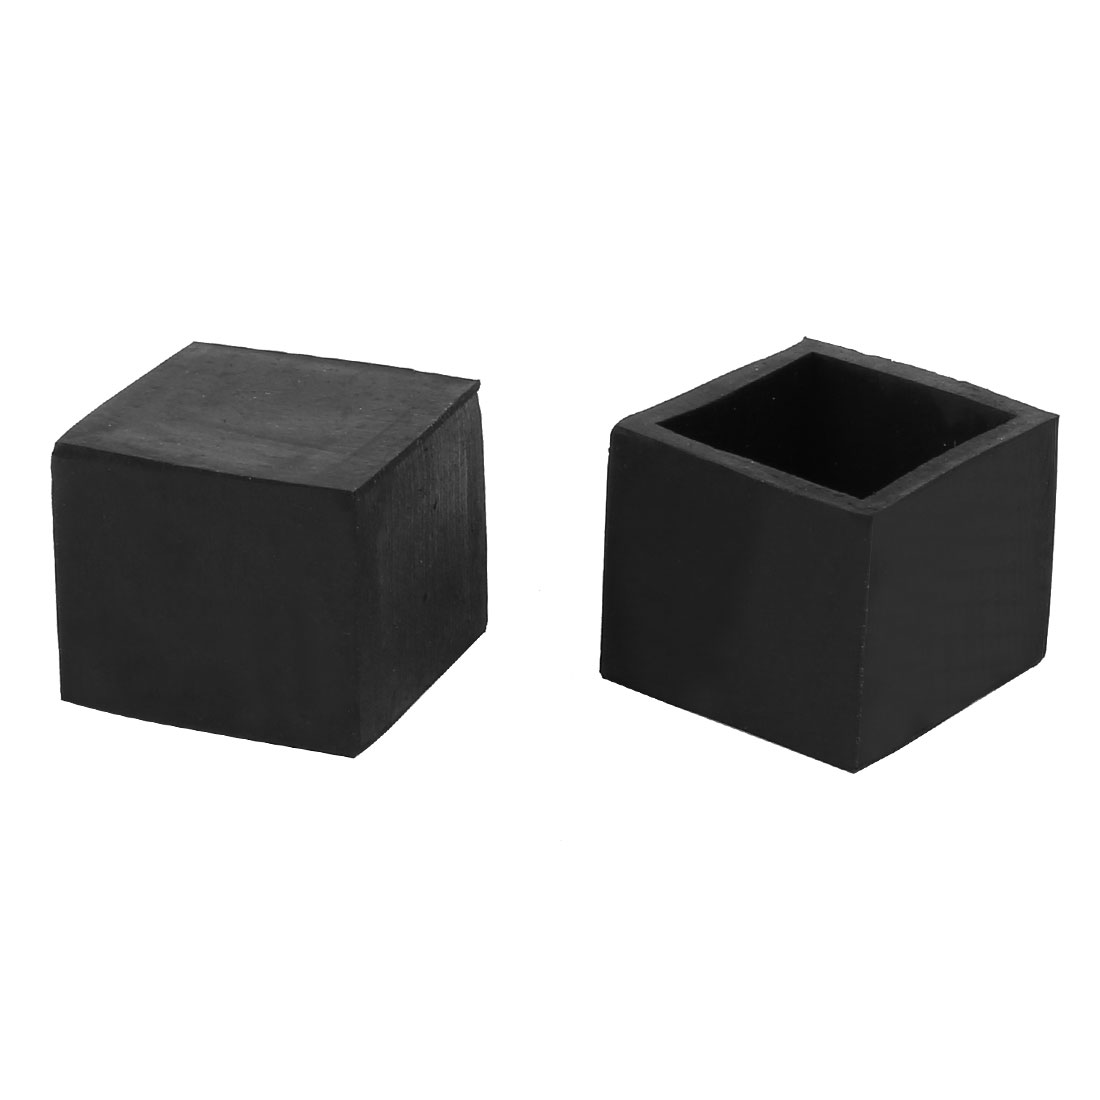 25mmx25mm Square Chair Leg Floor Protectors Table Feet Tips Covers Caps 2pcs